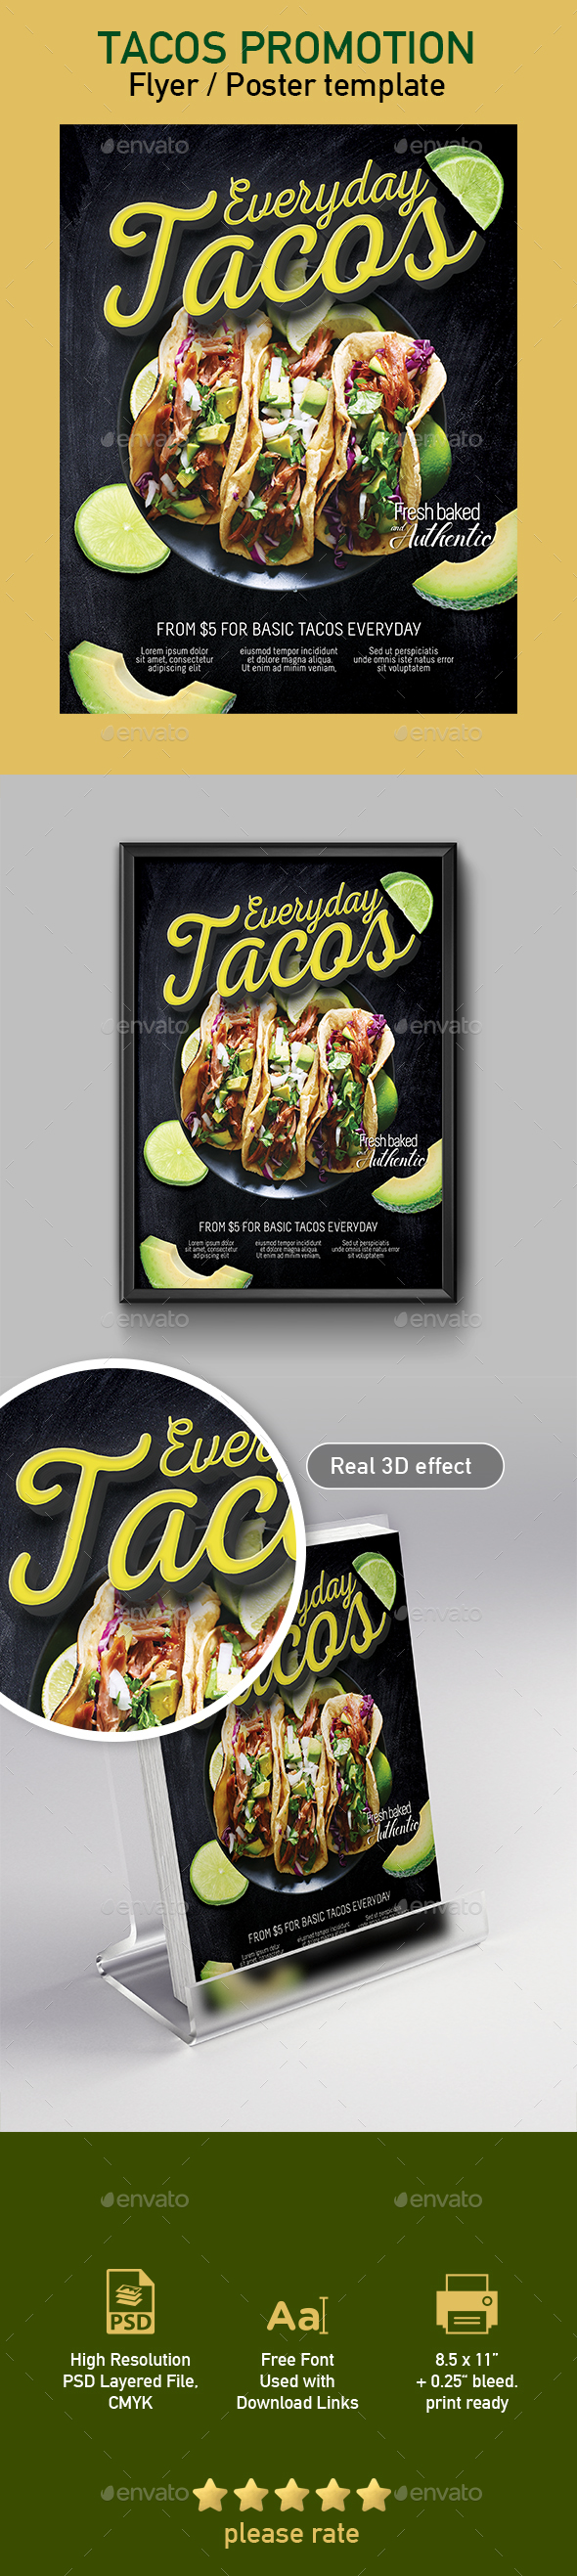 Tacos Flyer / Poster Template